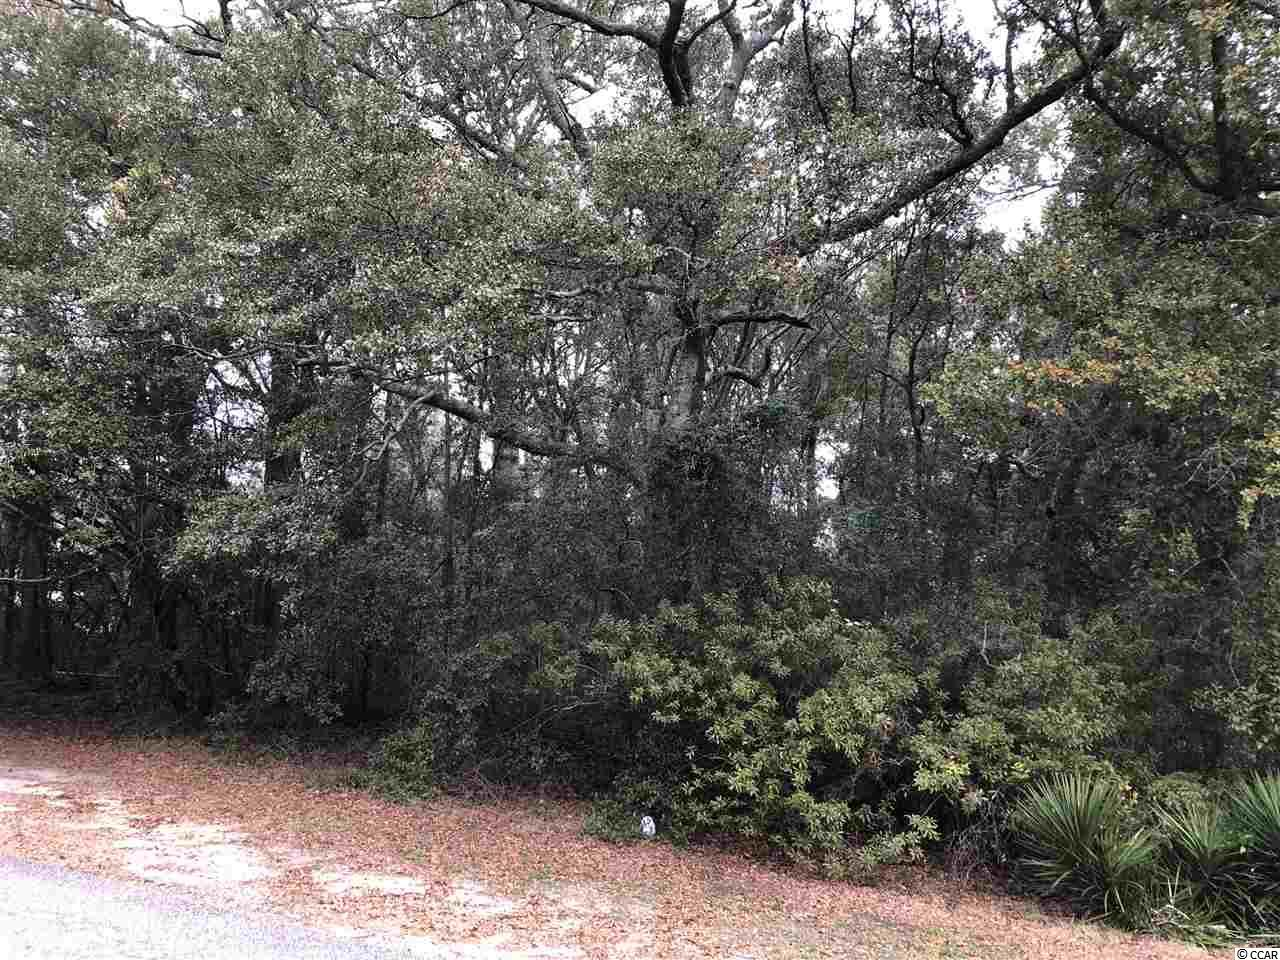 """What a great find! These lots seldom become available. It's one of a few lots left in coveted Arcadian Shores- a """"walk to the ocean"""" quiet community  with NO HOA that is tucked away and unknown to many, but cherished by all who live there. It's a perfect place to build your dream home. The sidewalked streets are flanked with mature trees, the lots are large, the homes are filled with character and not cookie cutter, and you can tell it's a well established neighborhood. A stone's throw from Arcadian Shores golf course, and also near to shopping, restaurants, theatres, Hwy 22 and 31, and of course the best part- a short walk or golf cart ride to the beautiful ocean! Build now and have a wonderful family home or get away, or wait as long as you want to build. No time frame, so it could be a perfect investment for your family for generations! Land near the beach- what could be better?"""